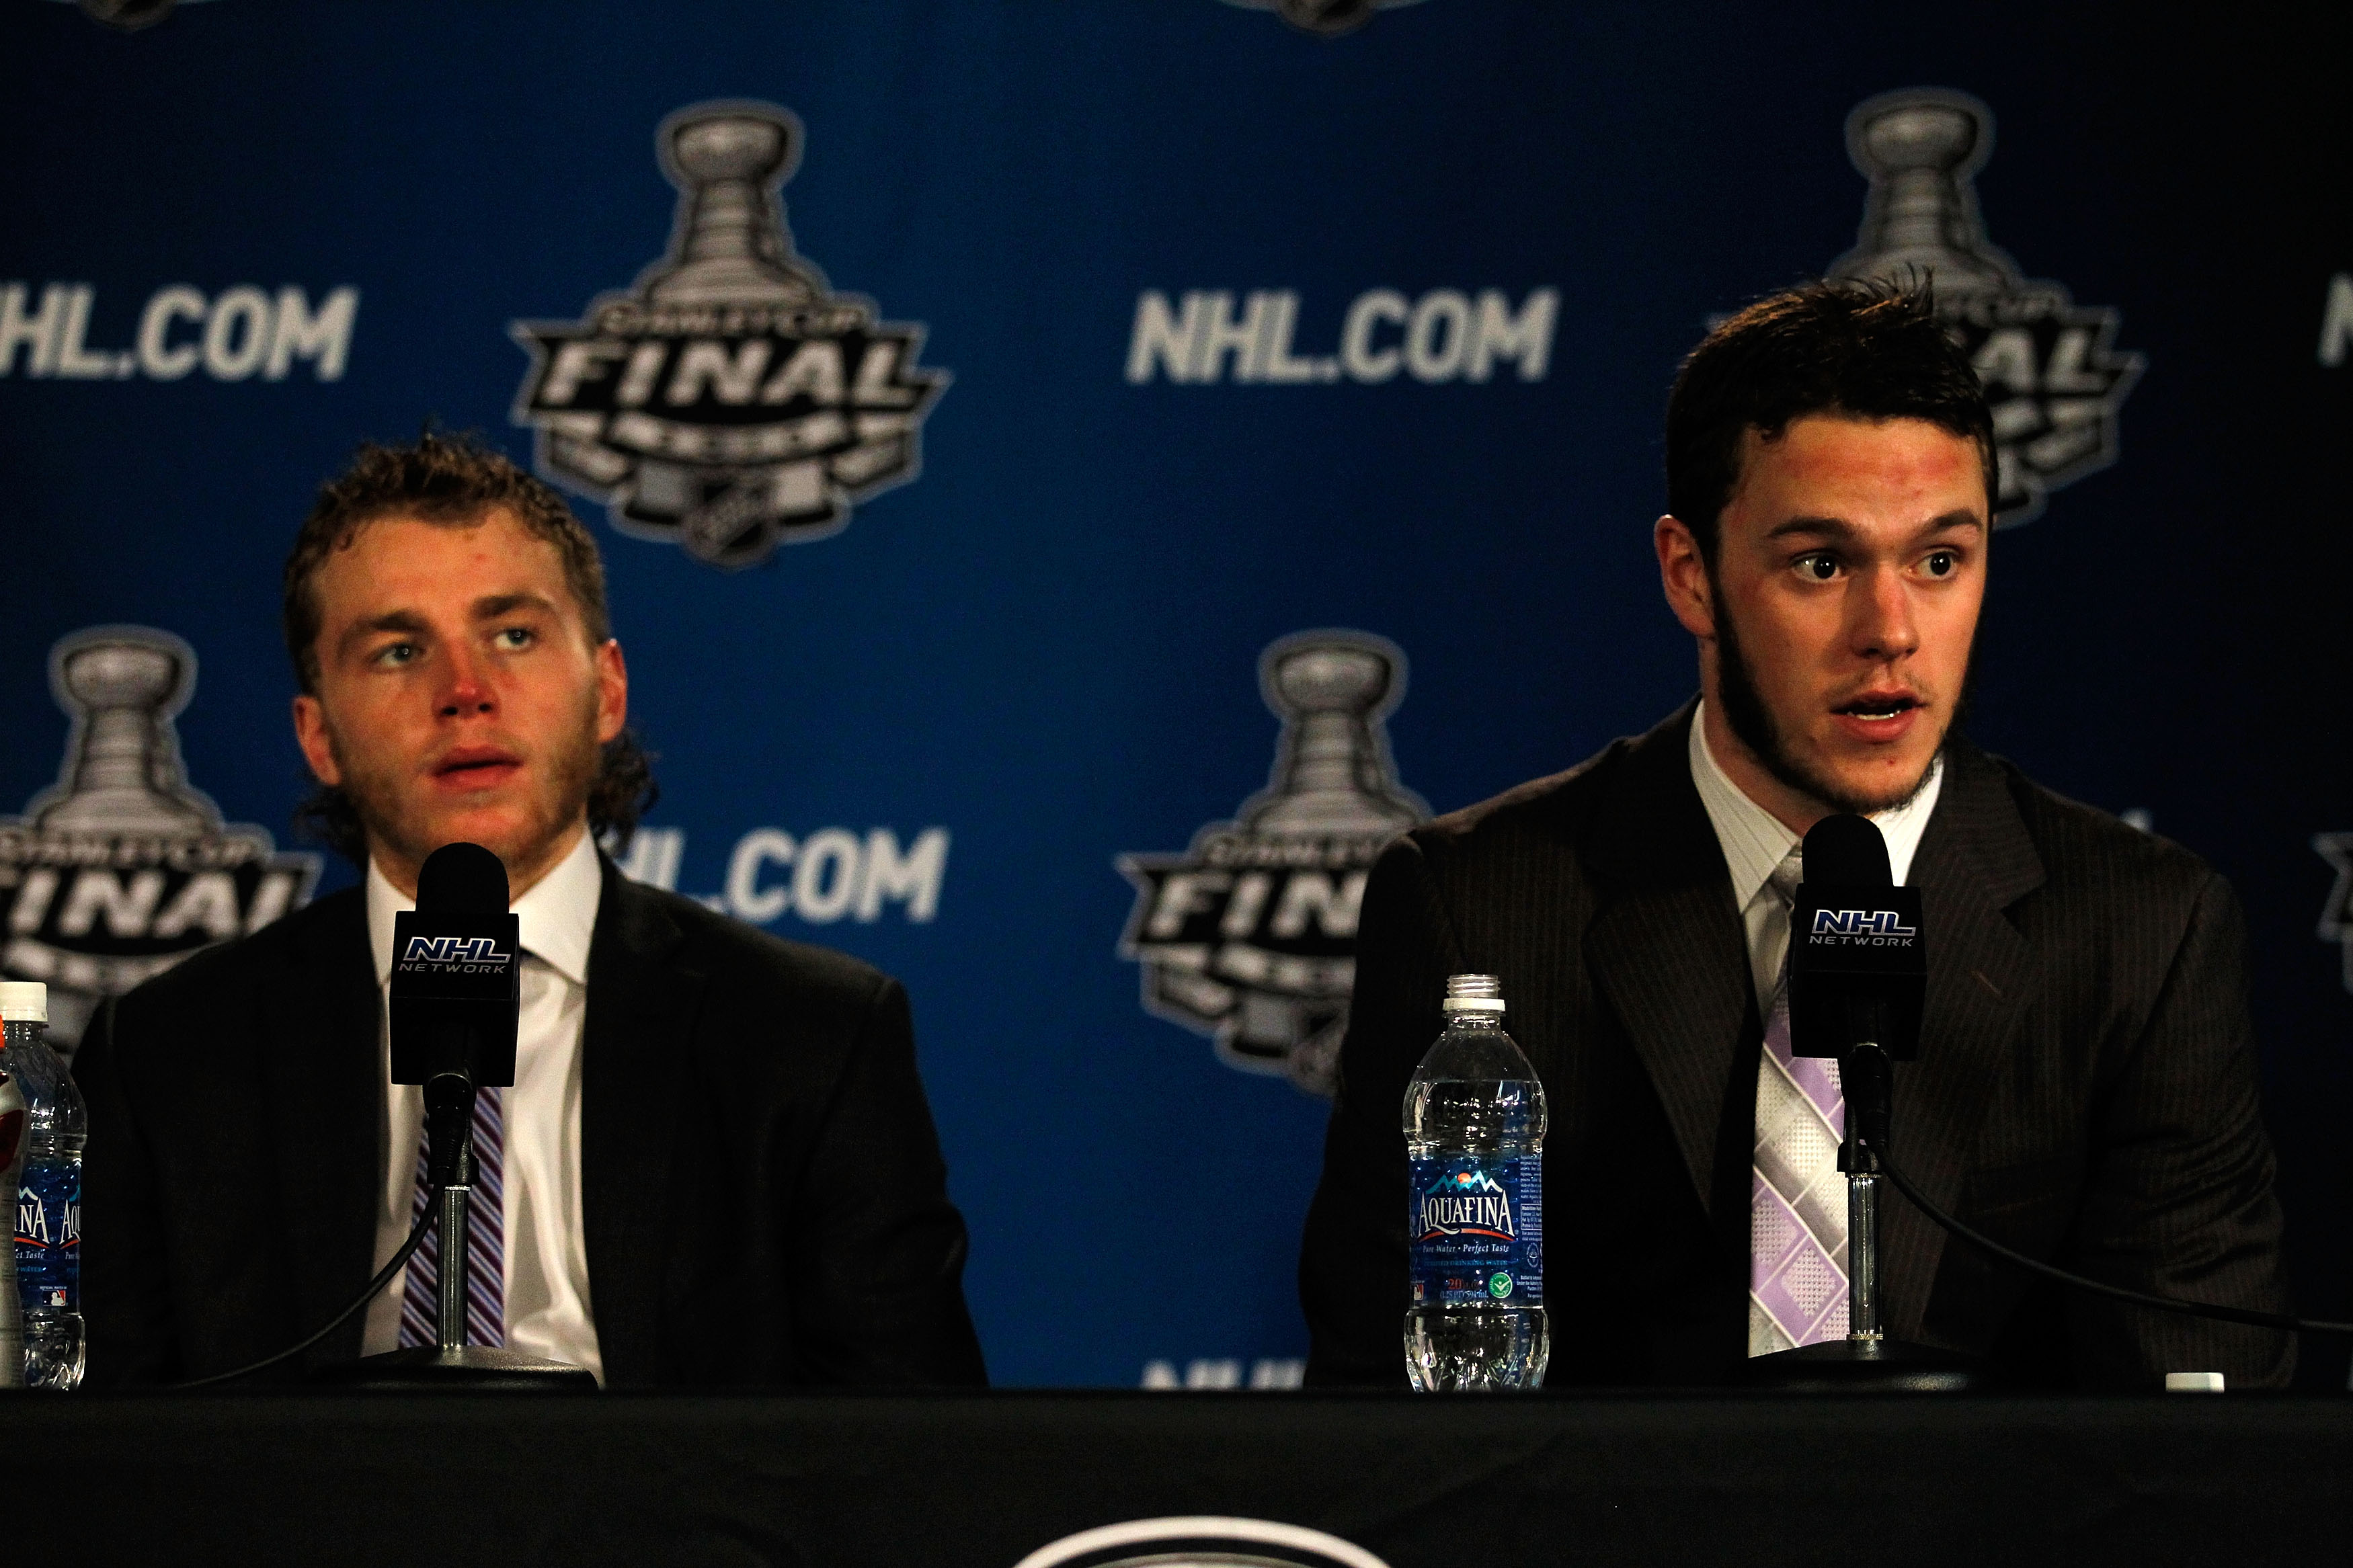 CHICAGO - JUNE 06:  Patrick Kane #88 (L) and Jonathan Toews #19 of the Chicago Blackhawks speak at a press conference after defeating the Philadelphia Flyers 7-4 in Game Five of the 2010 NHL Stanley Cup Final at the United Center on June 6, 2010 in Chicag